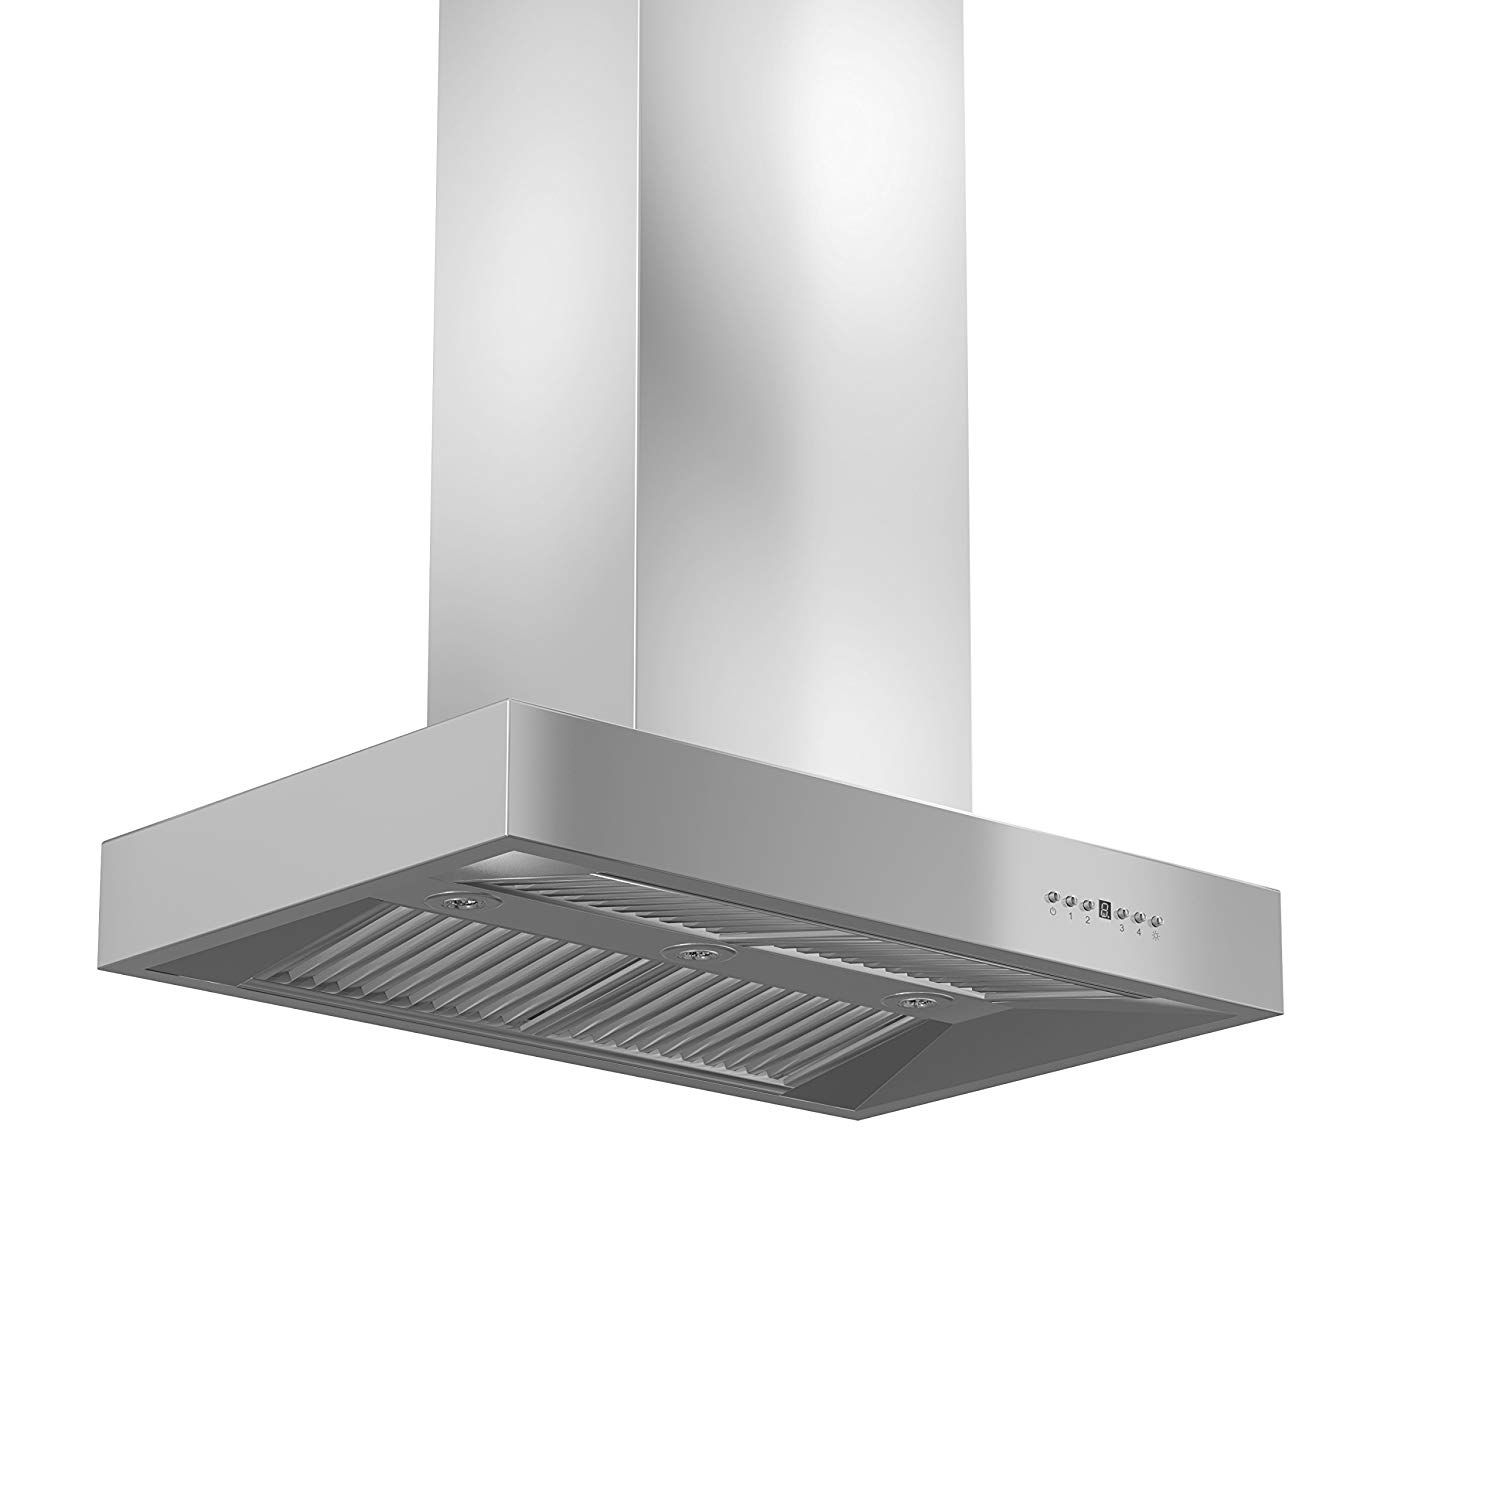 Z Line Kecomi Rd 36 1200 Cfm Island Mount Range Hood With Remote Dual Blower 36 Stainless Steel Island Island Range Hood Range Hood